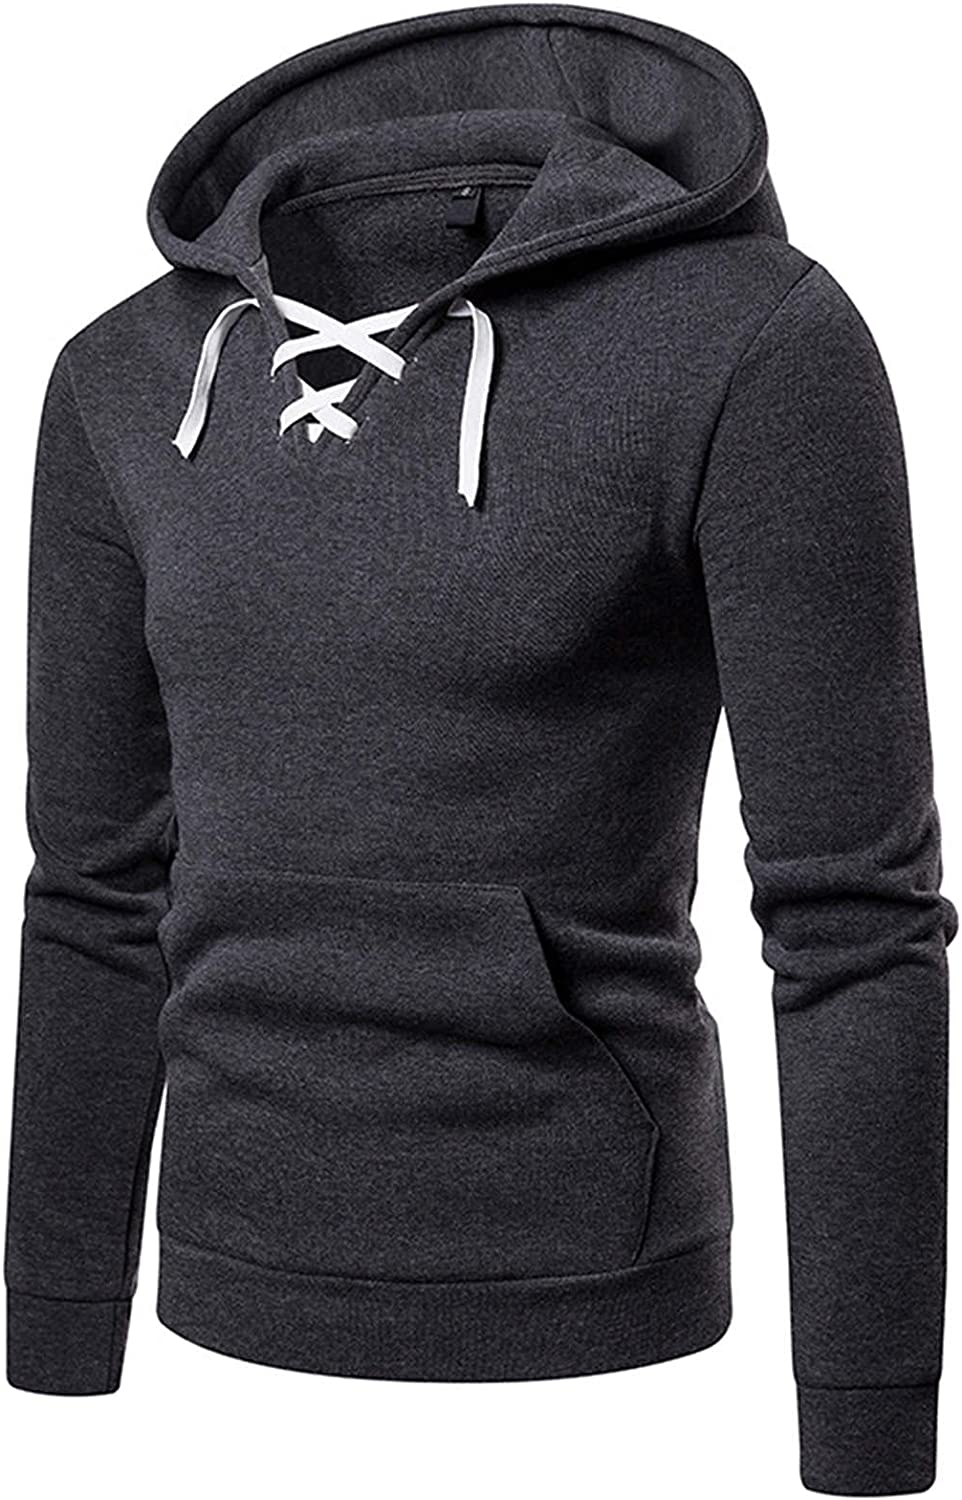 XXBR Hoodies for Mens, 2021 Fall Button Neck Lace-up Hooded Pullover Drawstring Slim Fit Workout Casual Sweatshirts